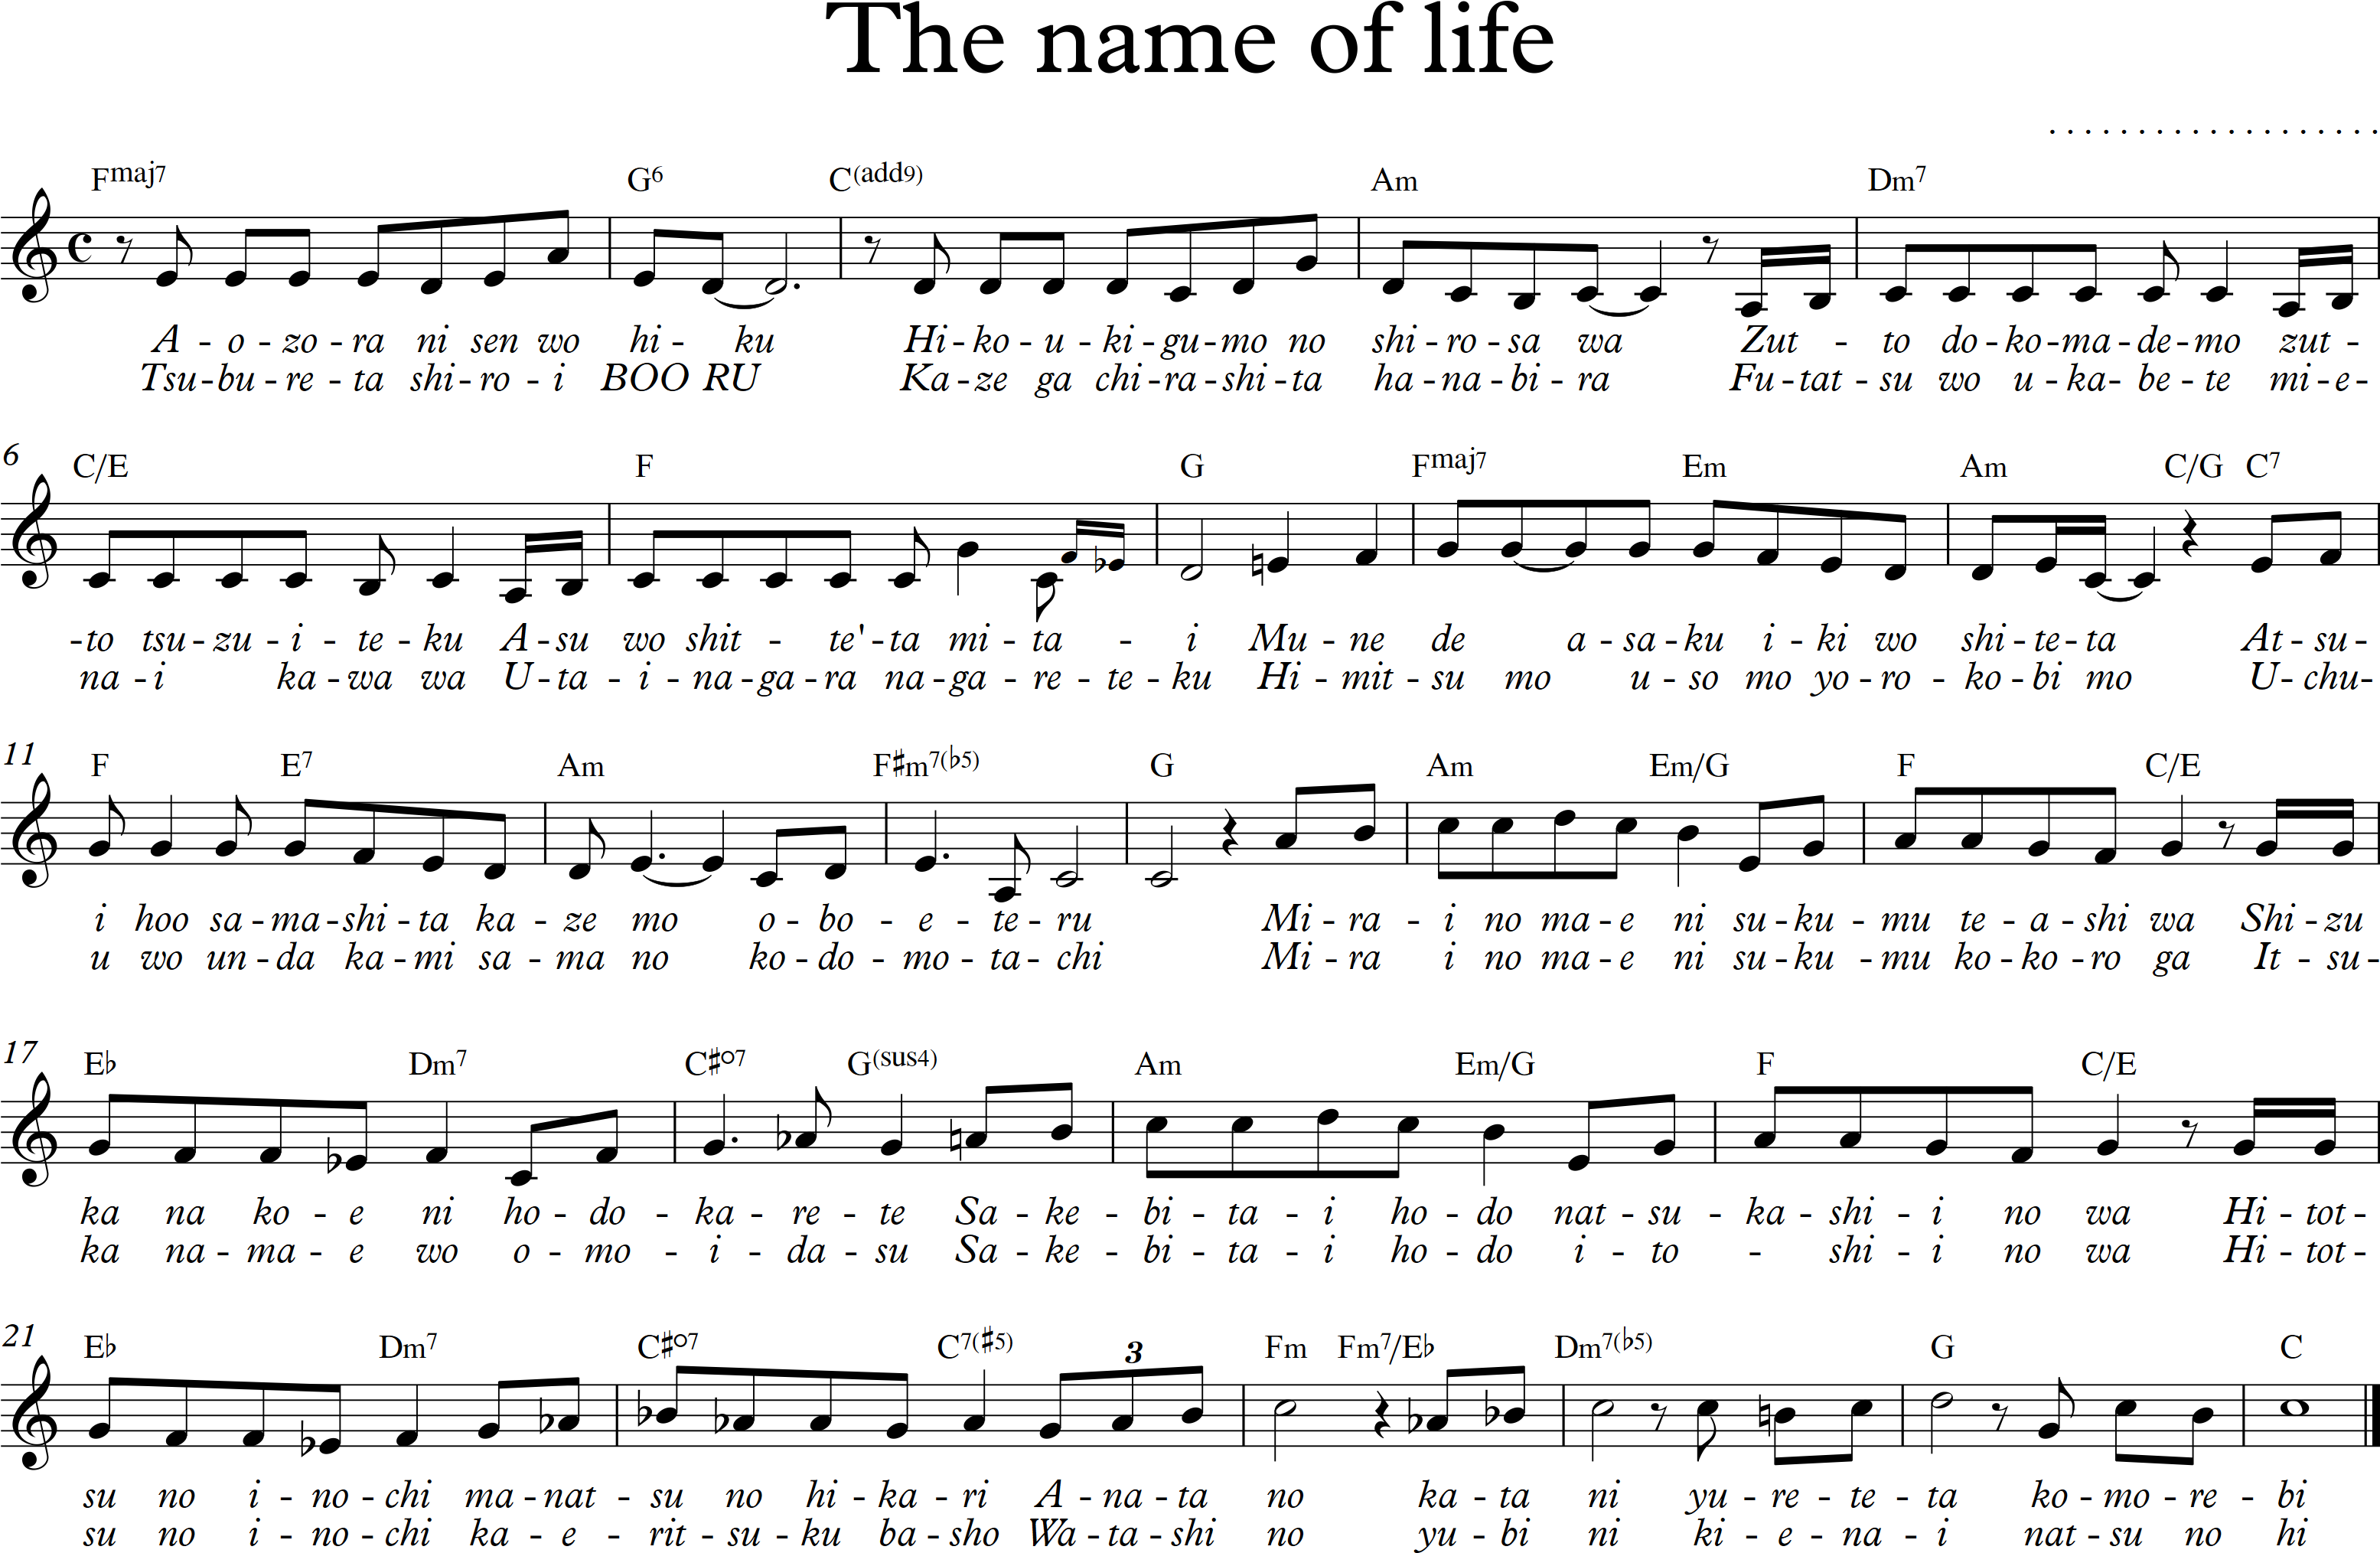 The name of life